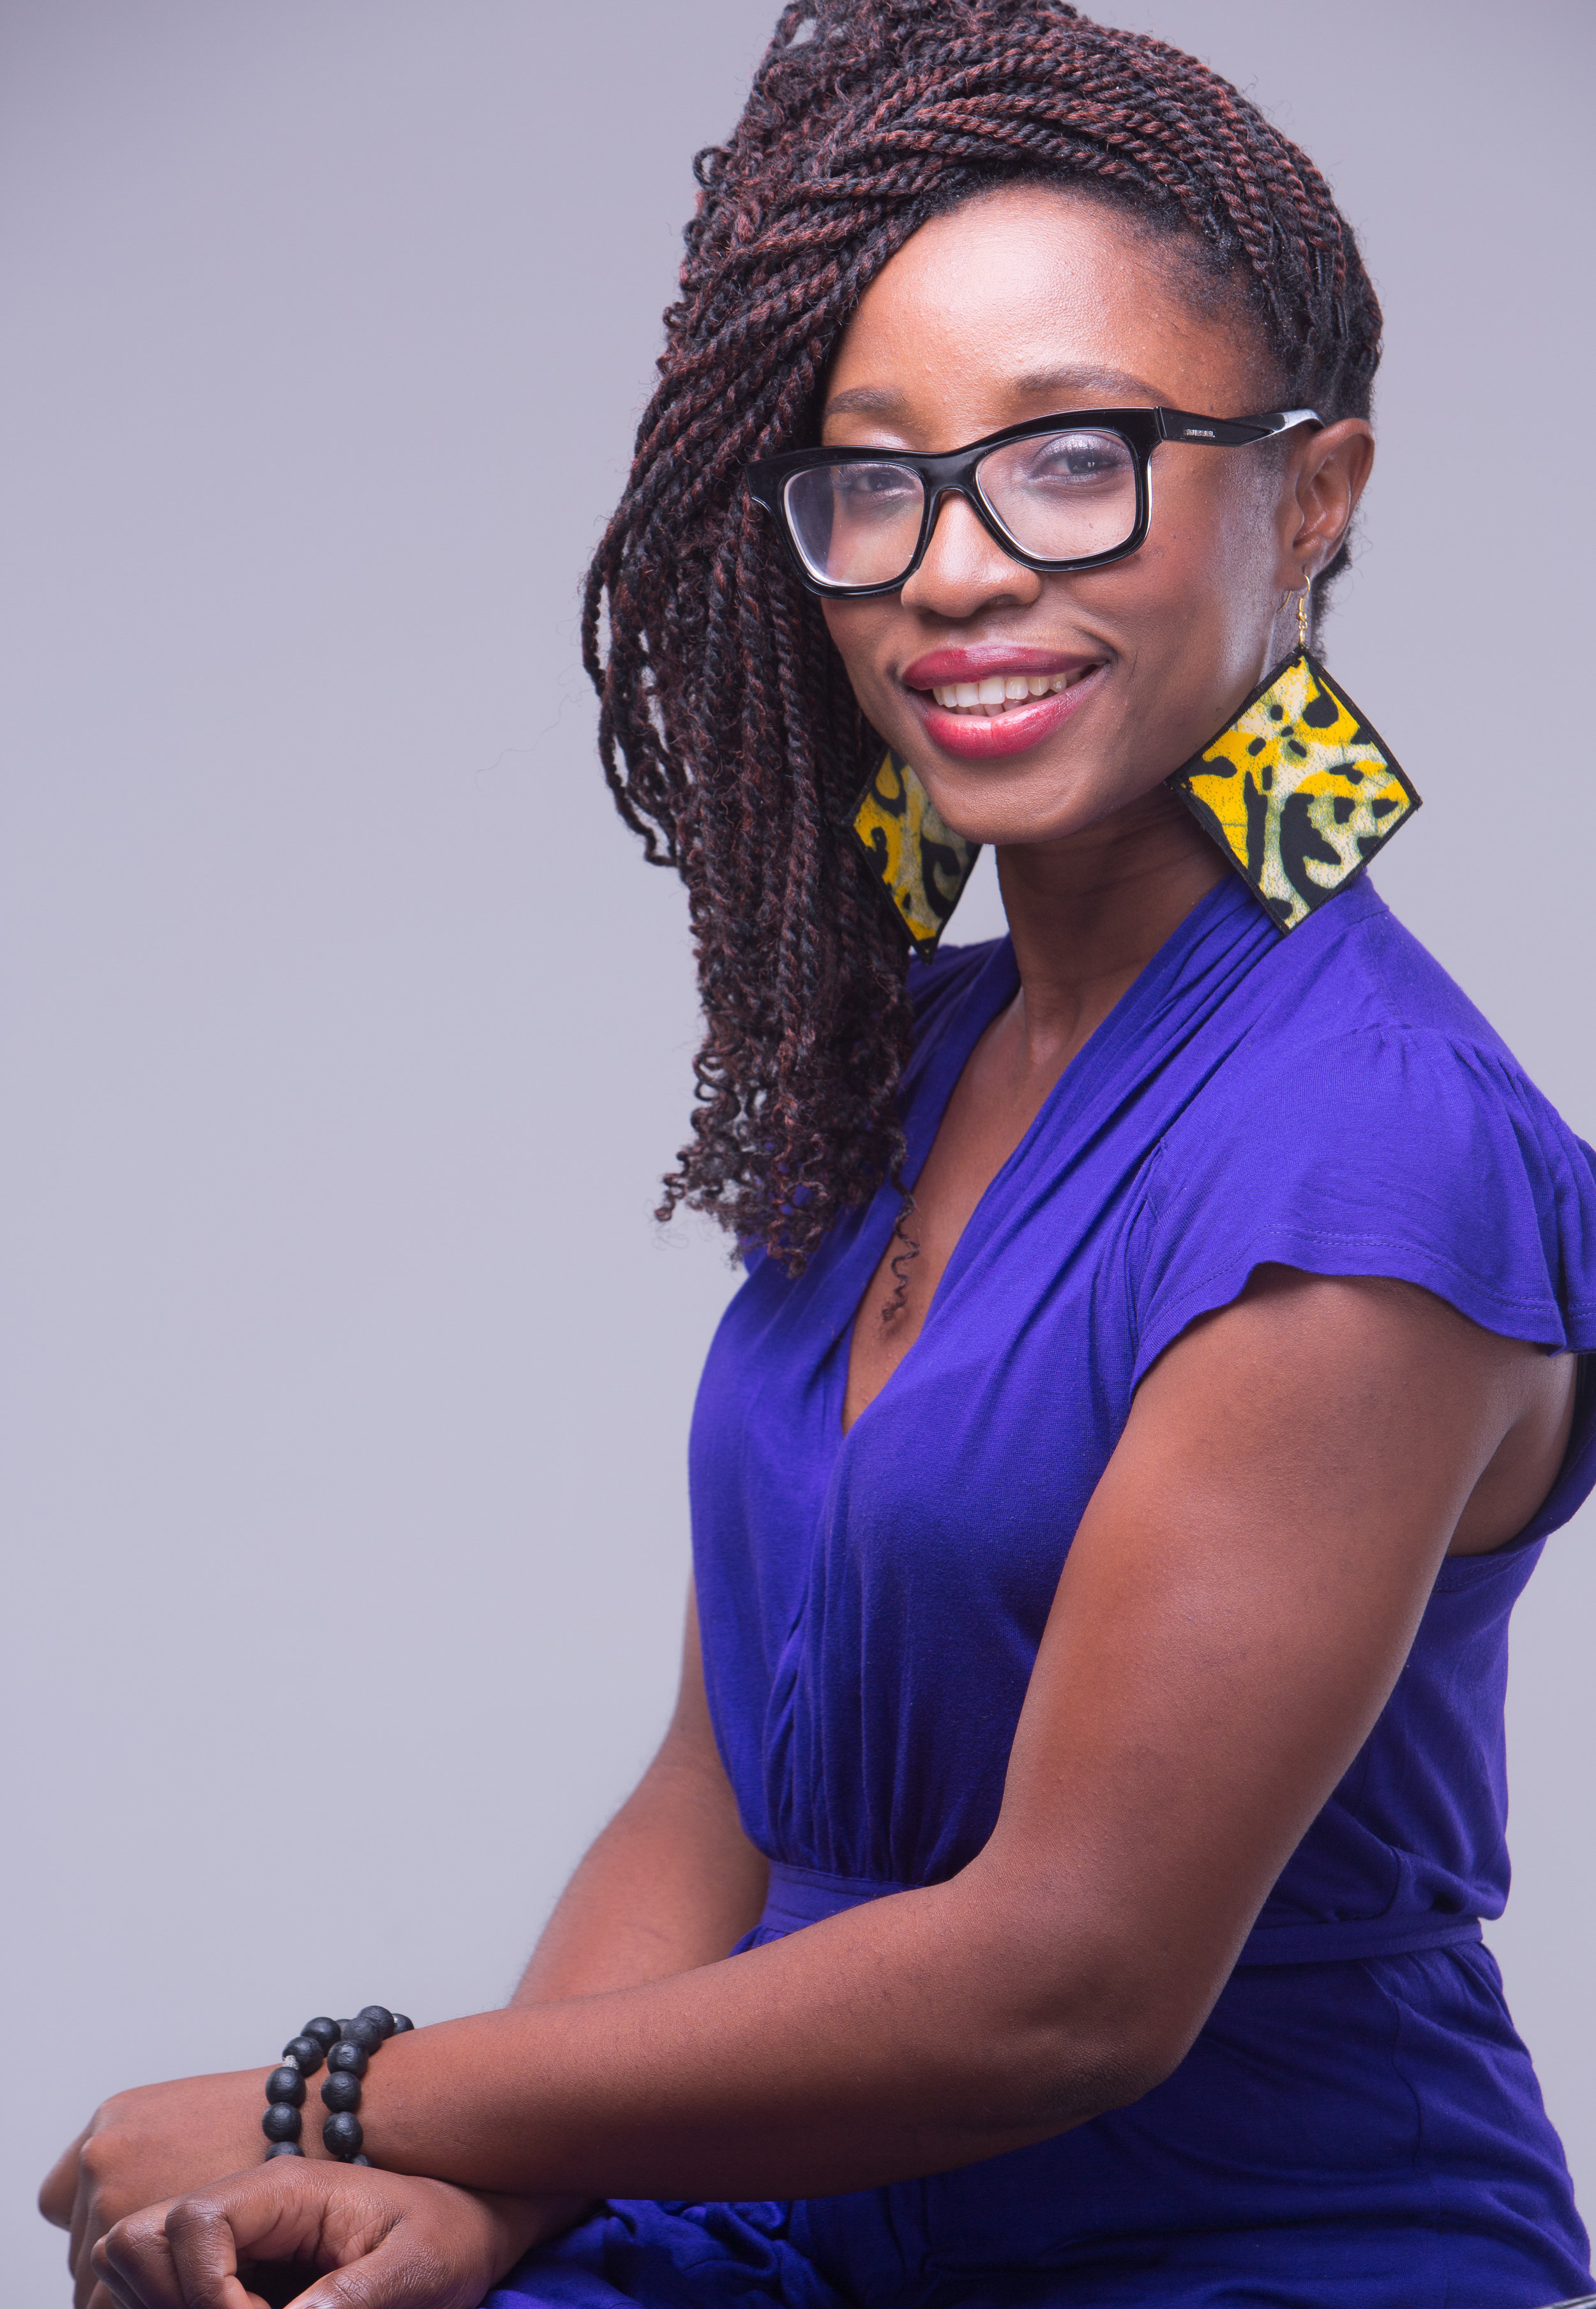 Contributor Profile - This is a SeeMyChow contribution by Life & Style blogger Naa Oyoo Kumodzi who writes at naaoyooquartey.com . She is a born foodie, lifestyle blogger, food photographer and social media strategist for businesses.